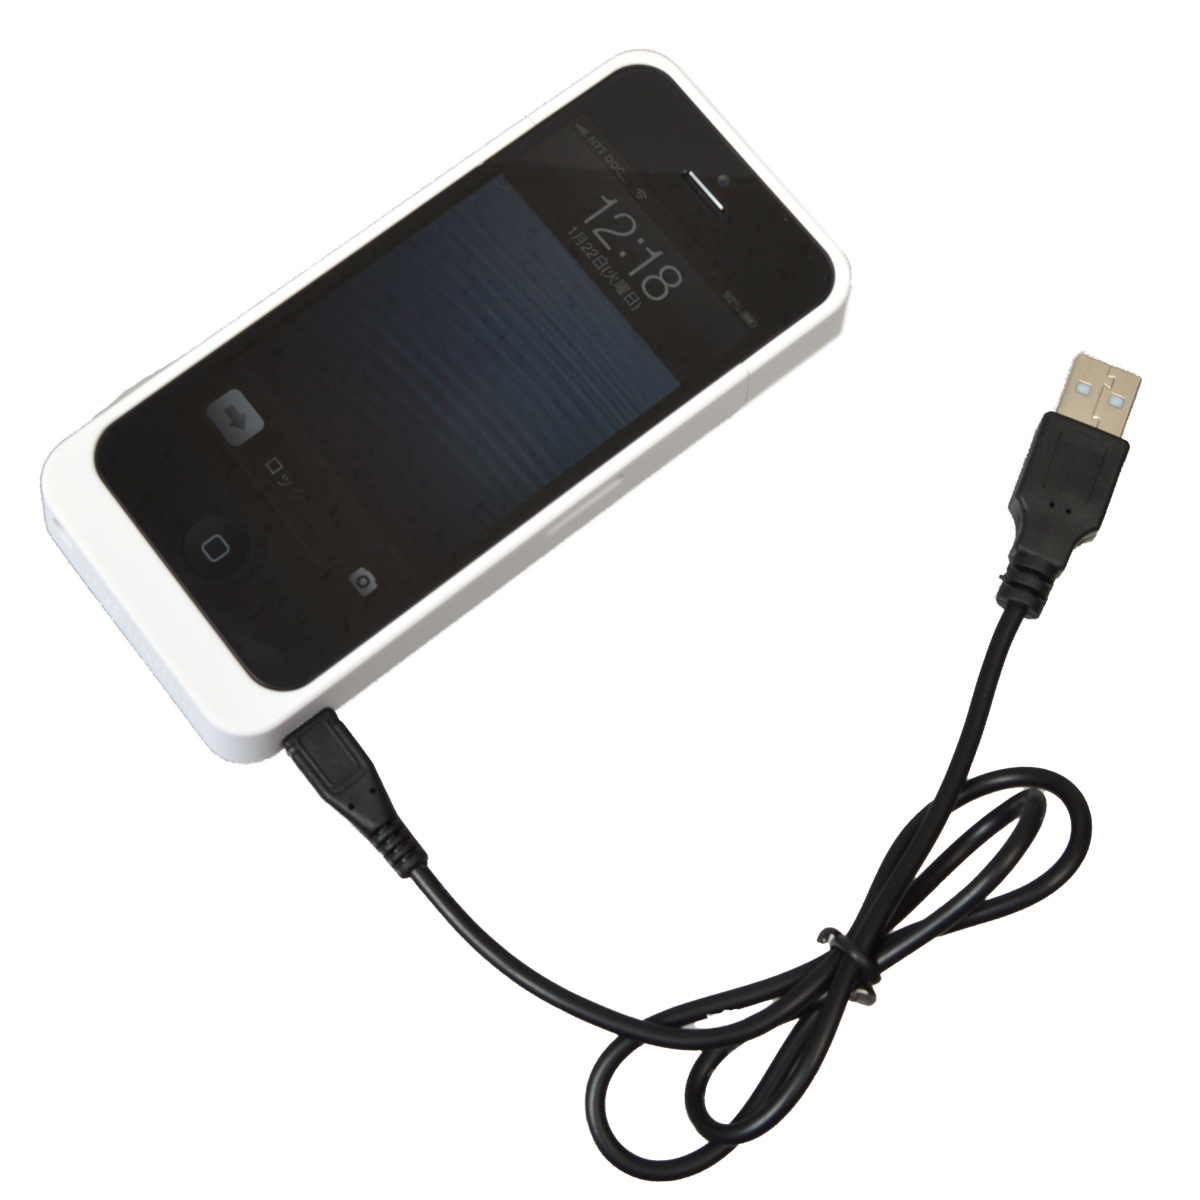 Thanko USIP5BT1 - obudowa dla iPhone 5 z akumulatorem 2600 mAh